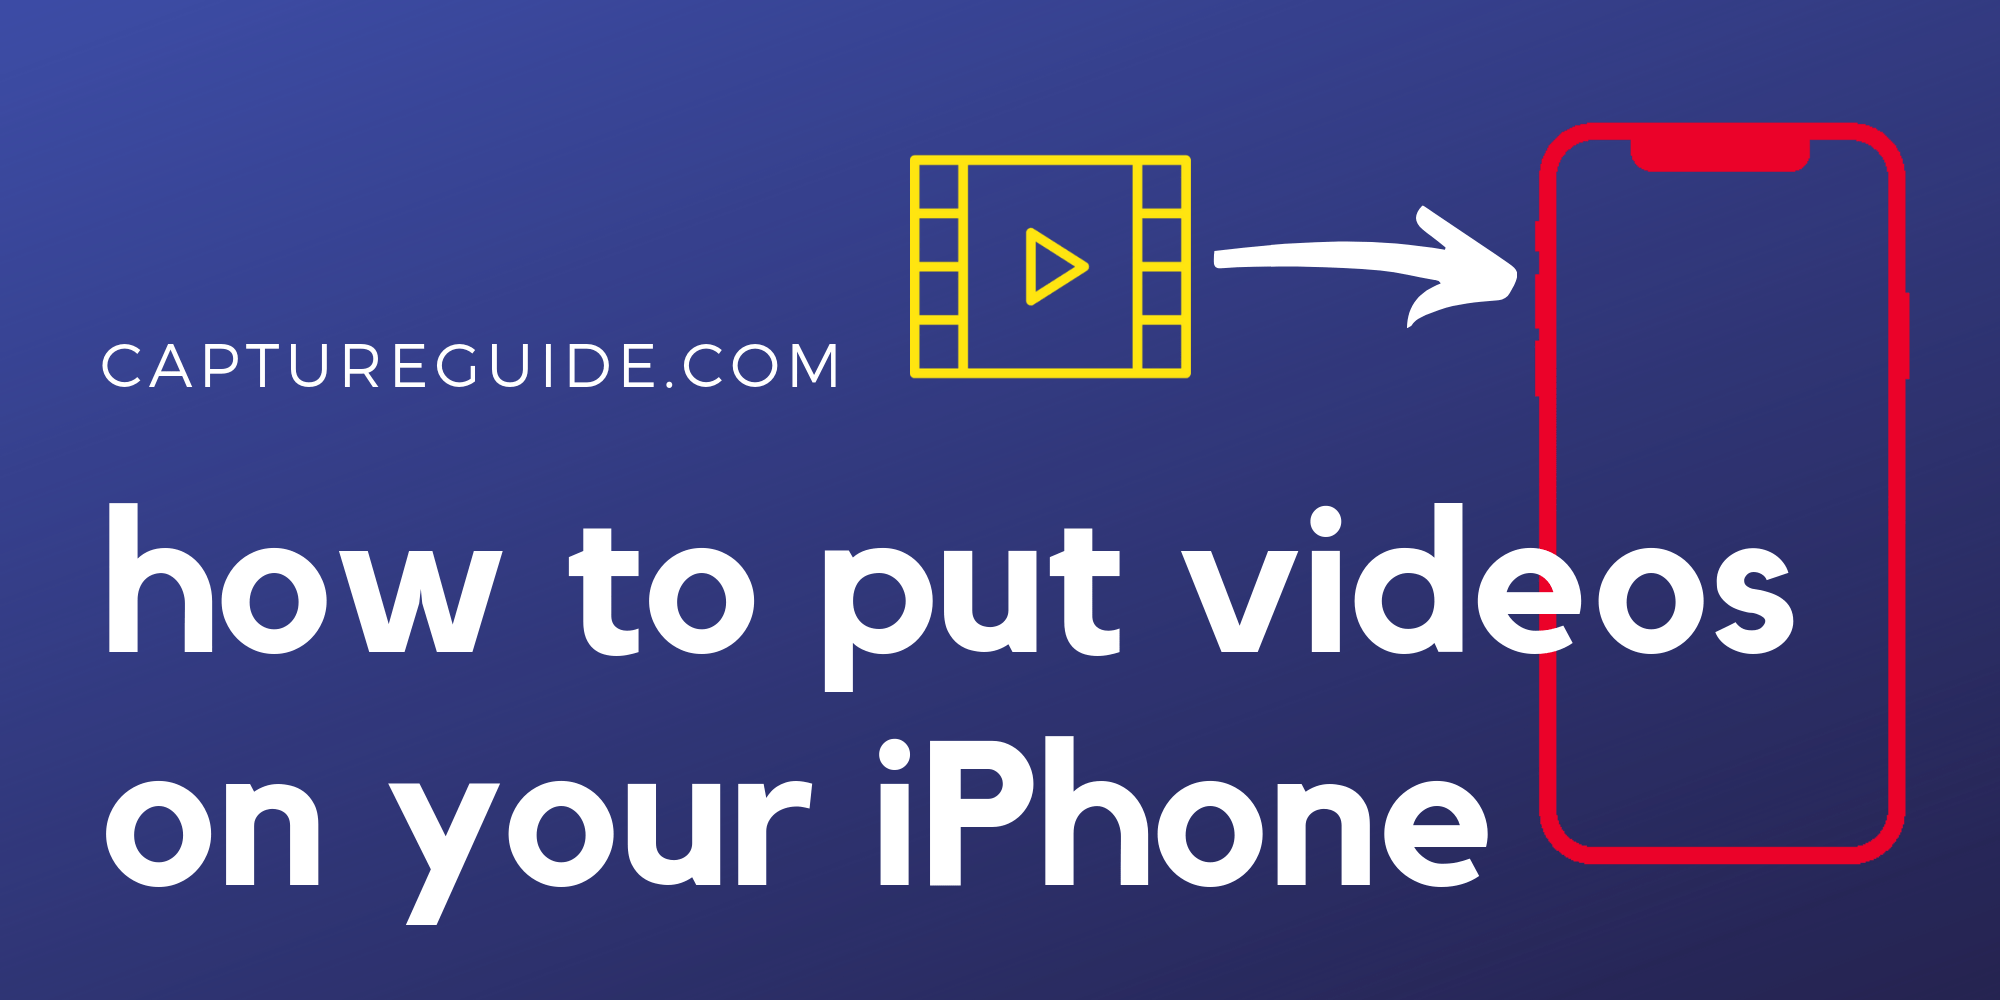 featured image for how to put videos on iphone tutorial